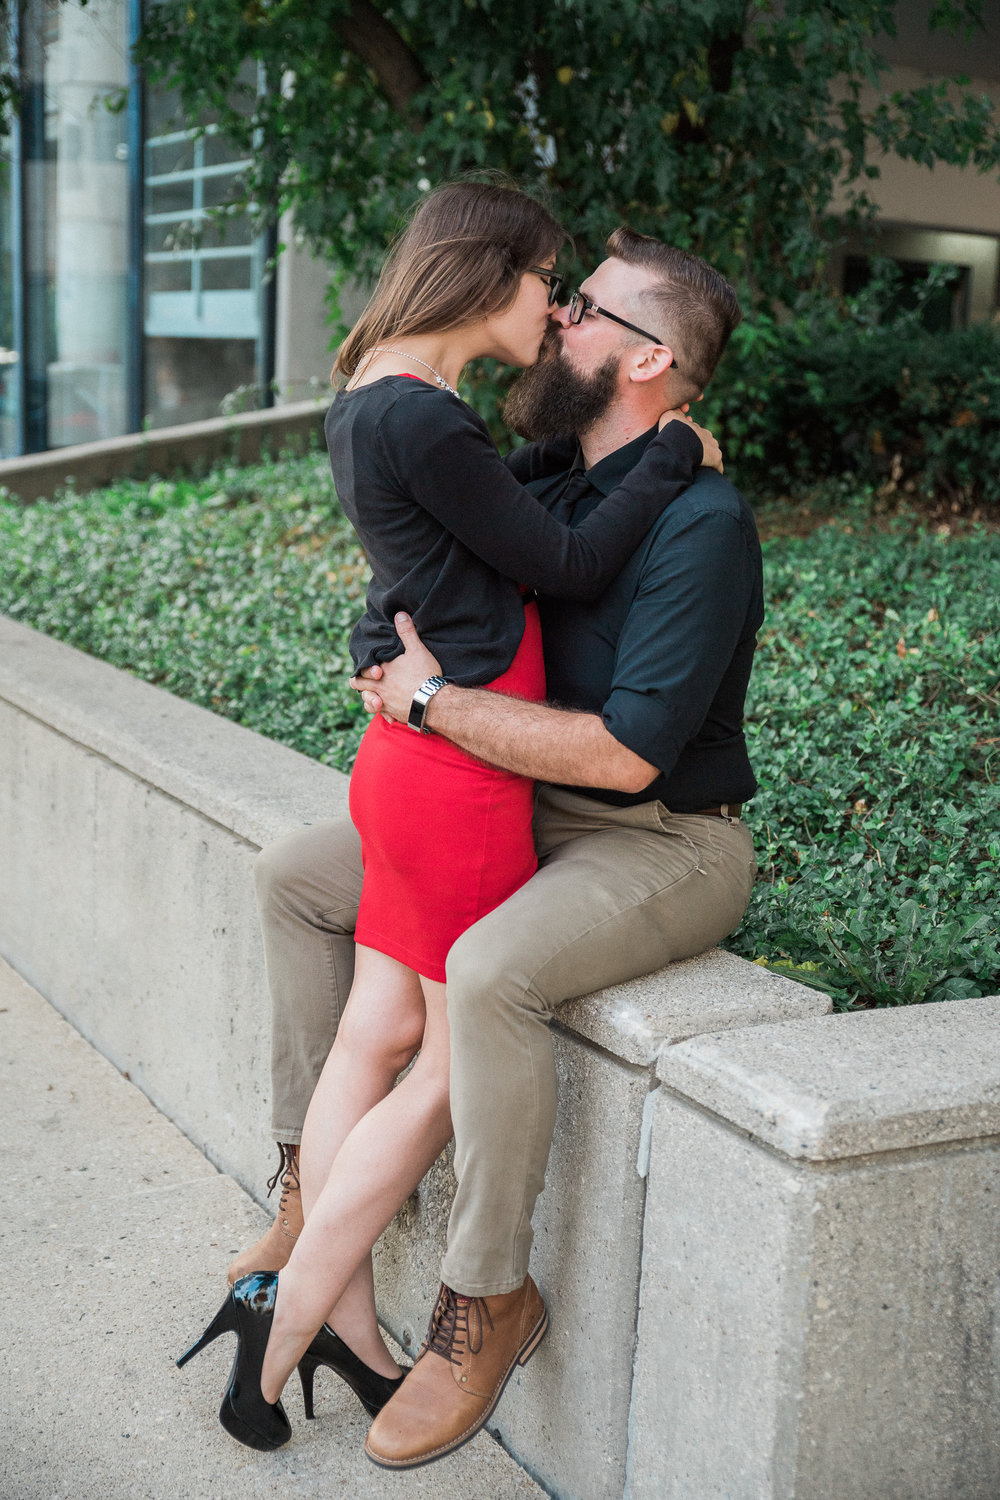 Man sits on a concrete ledge as his fiance stands in between his legs and kisses him.